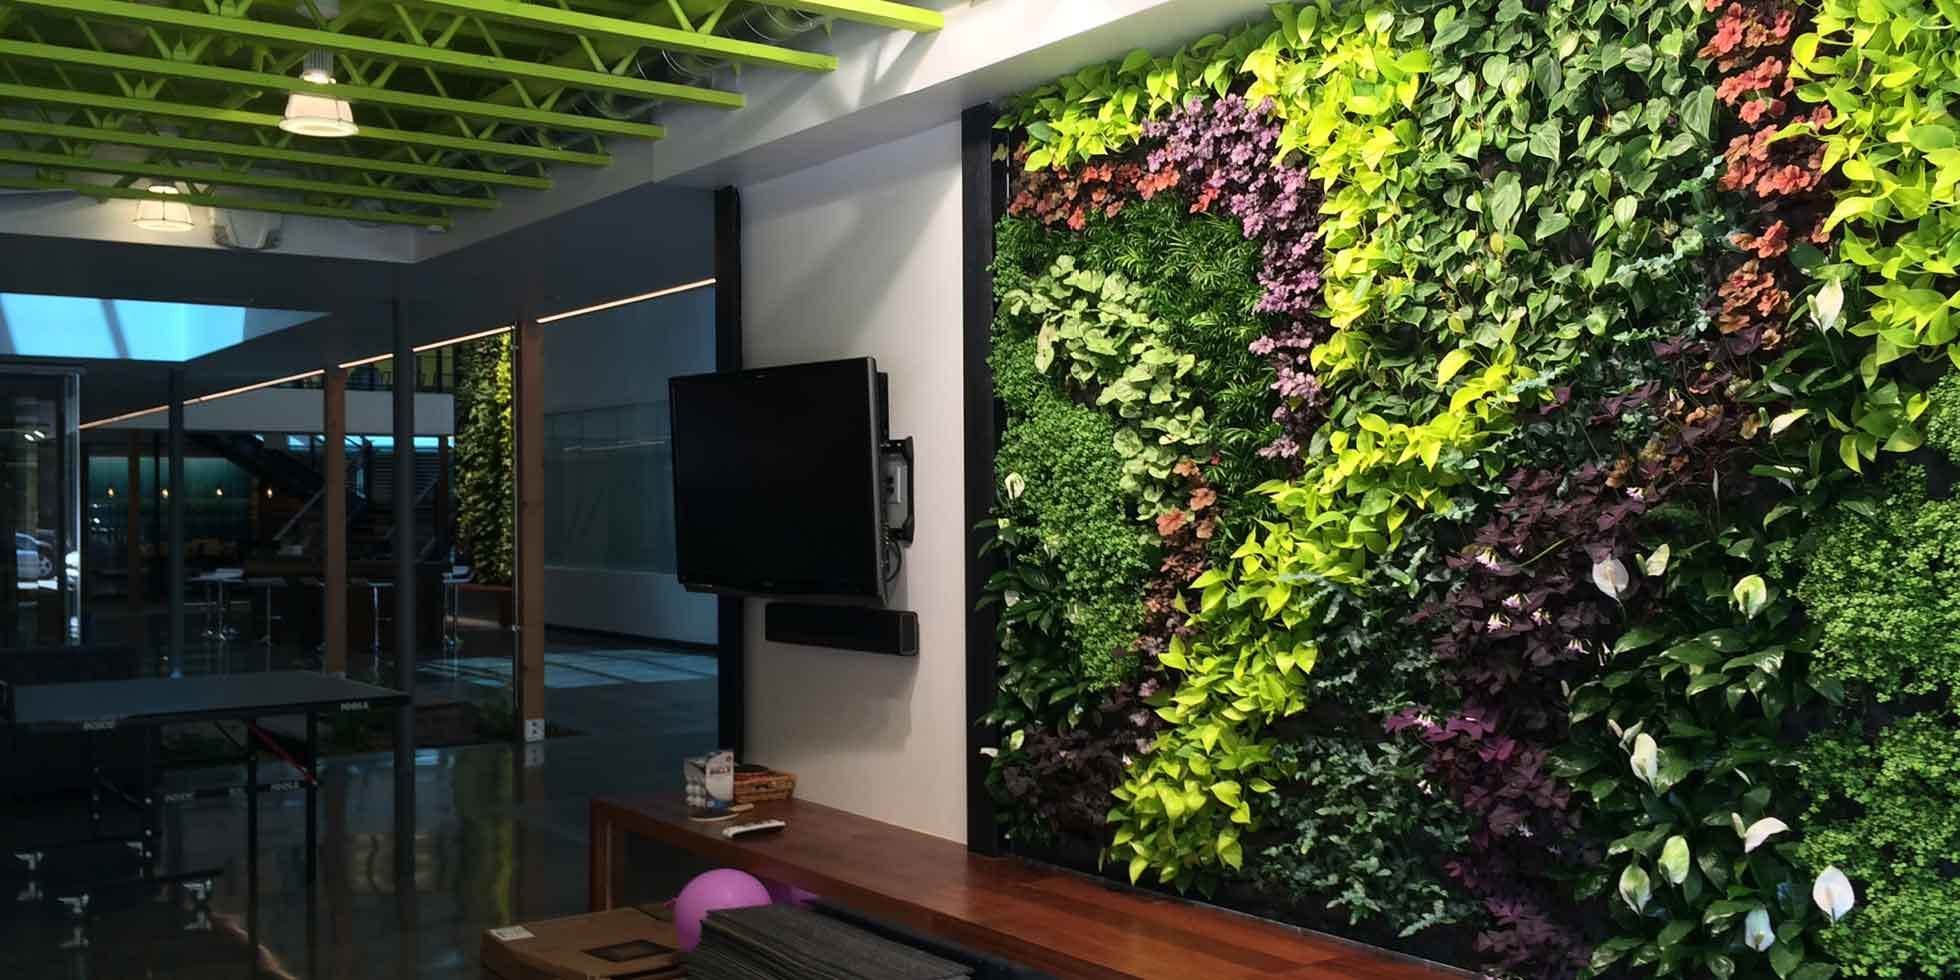 DPR Construction Living Wall by Habitat Horticulture - View 2